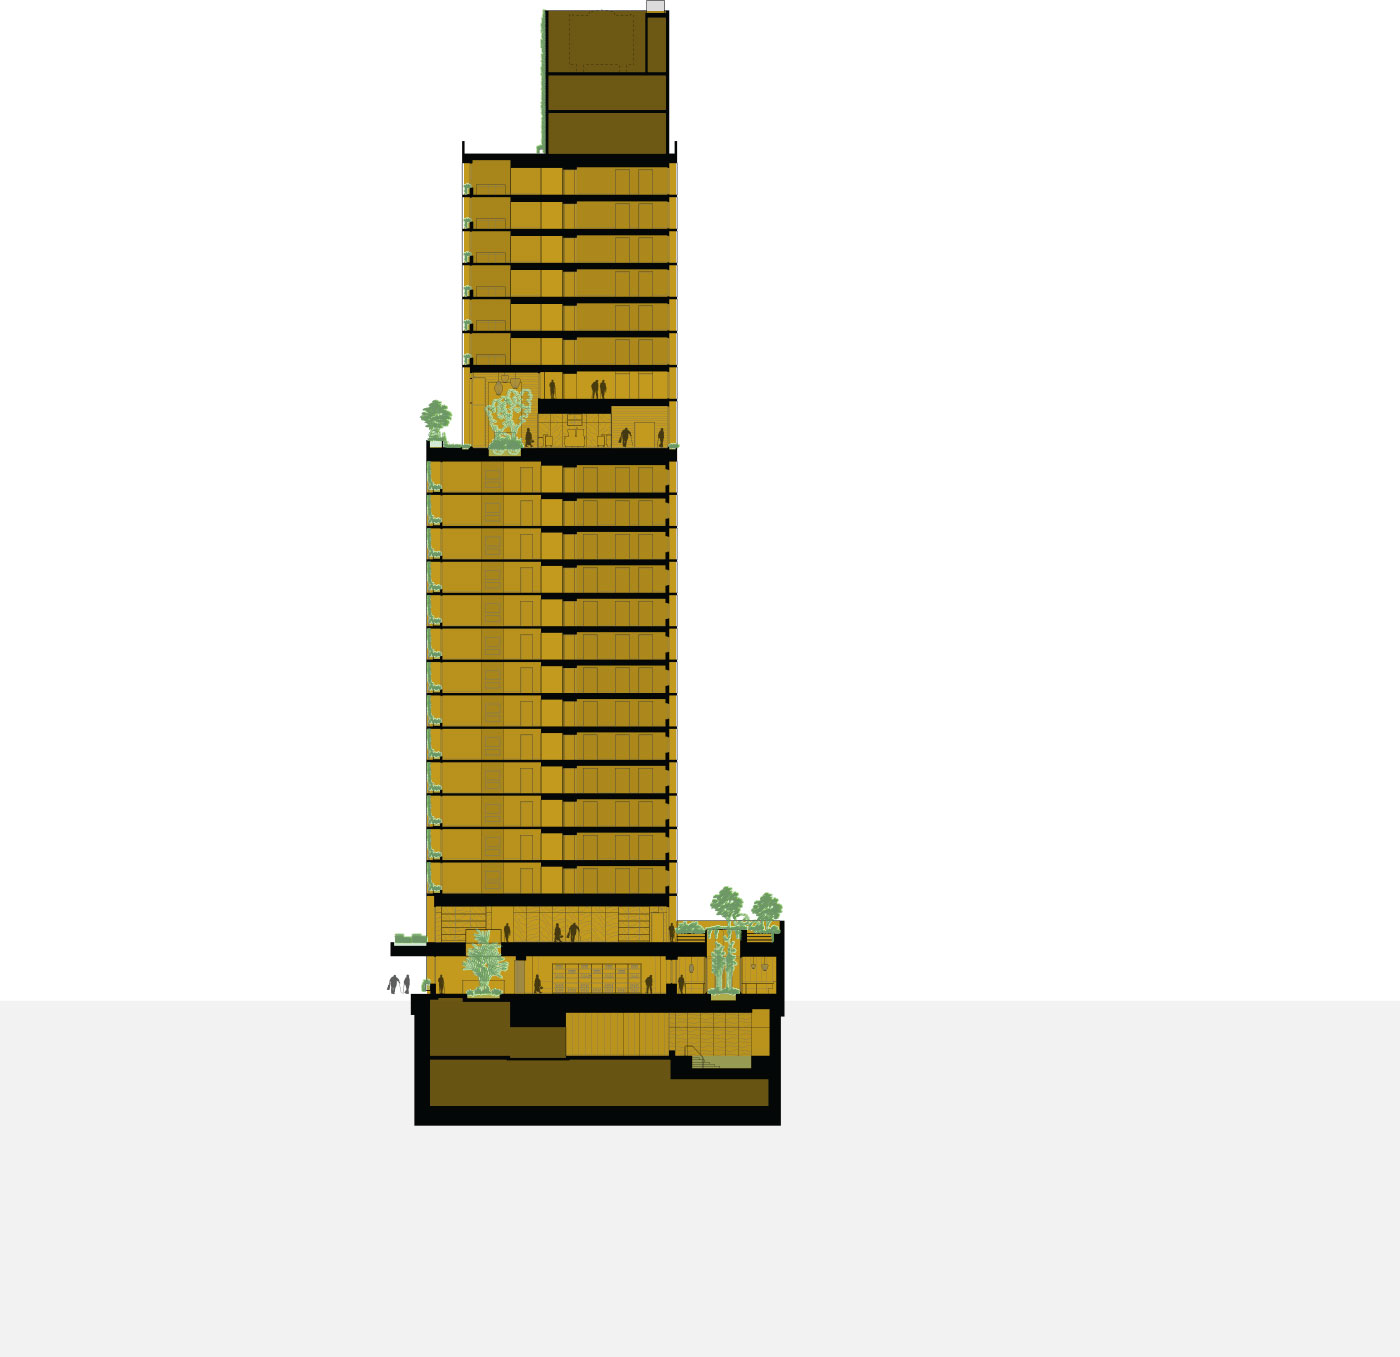 Rendering of the Inspire skyscraper building